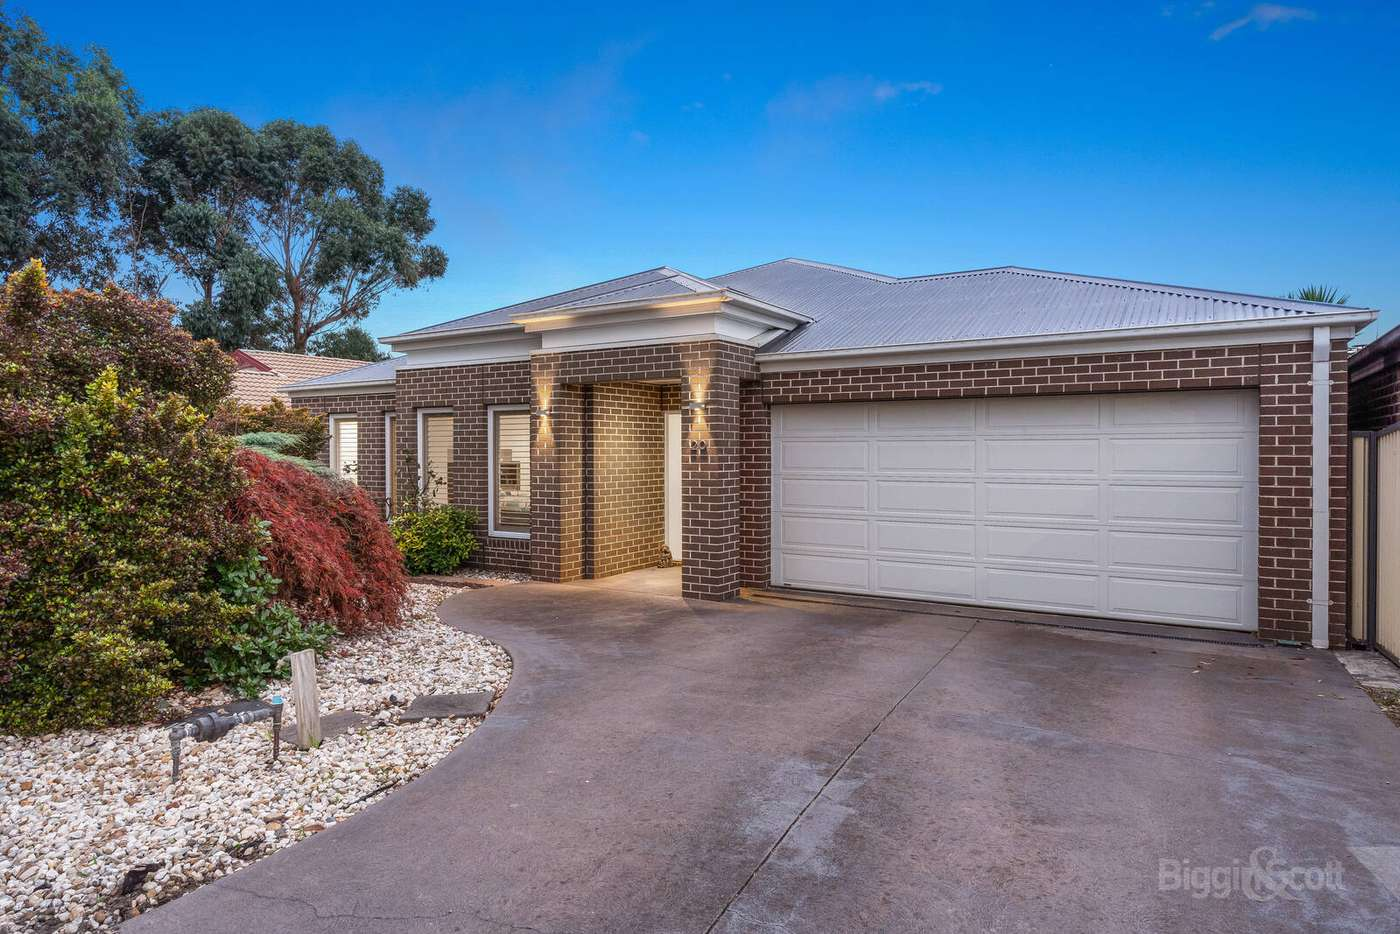 Main view of Homely house listing, 20 Walmac Close, Tooradin VIC 3980